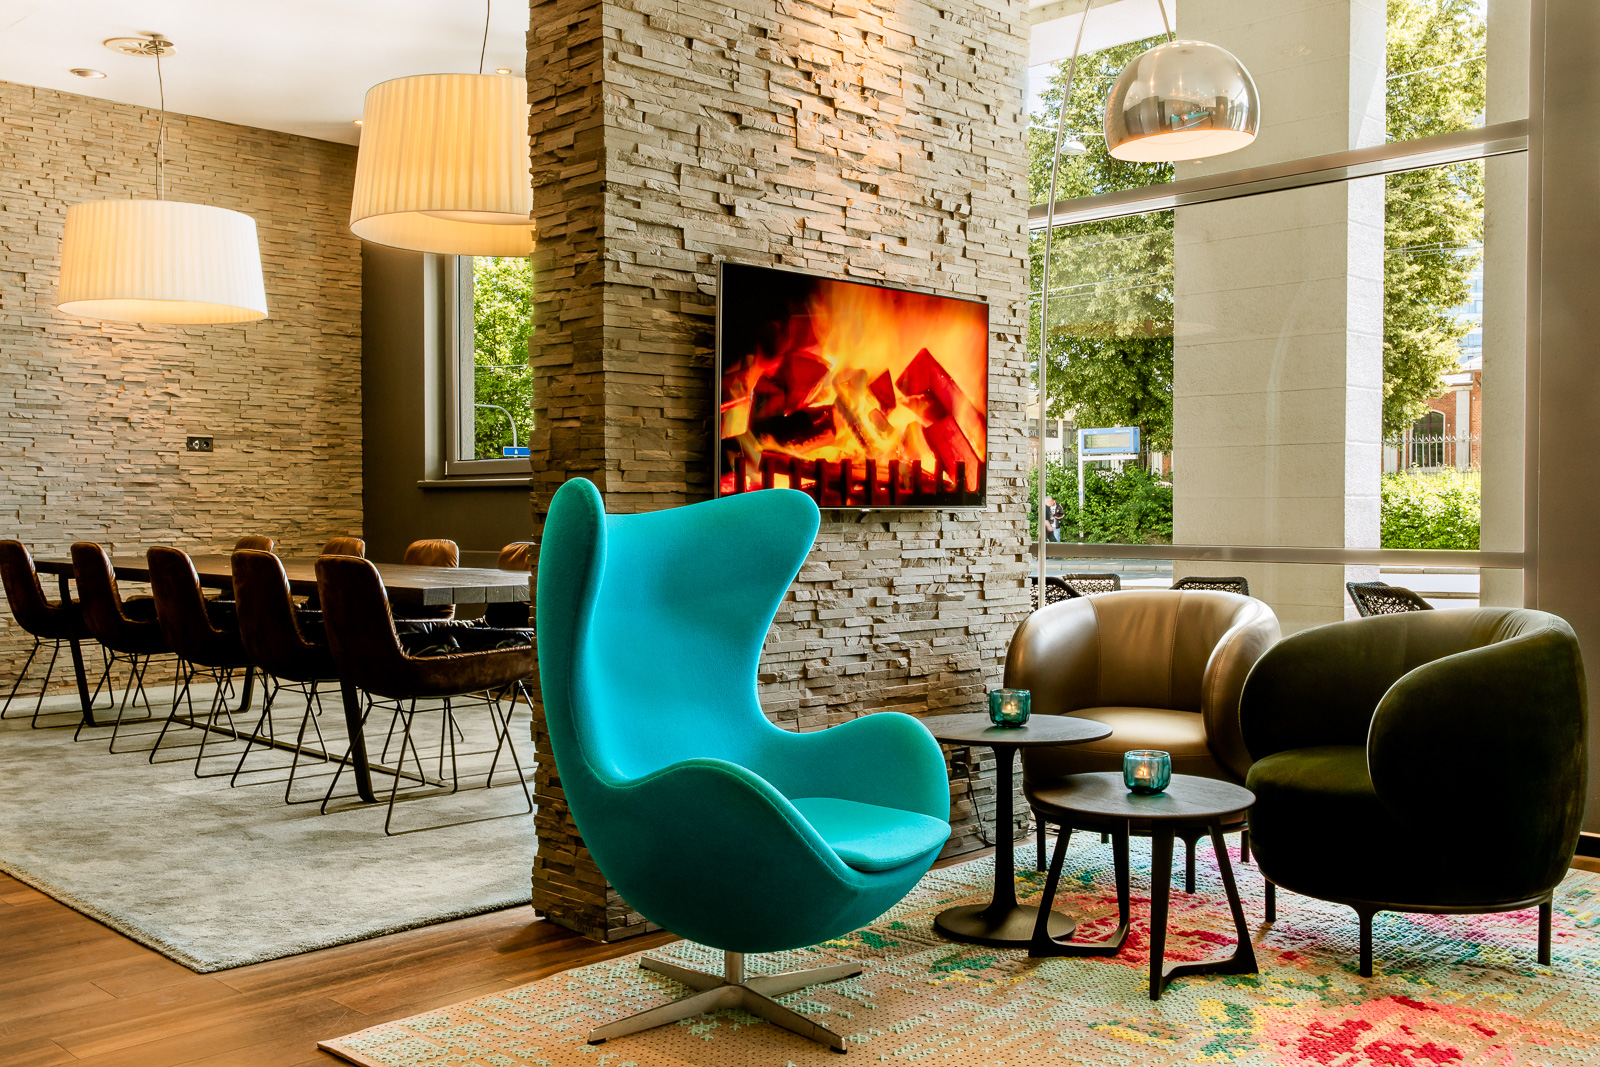 Hotel Motel One München-East Side